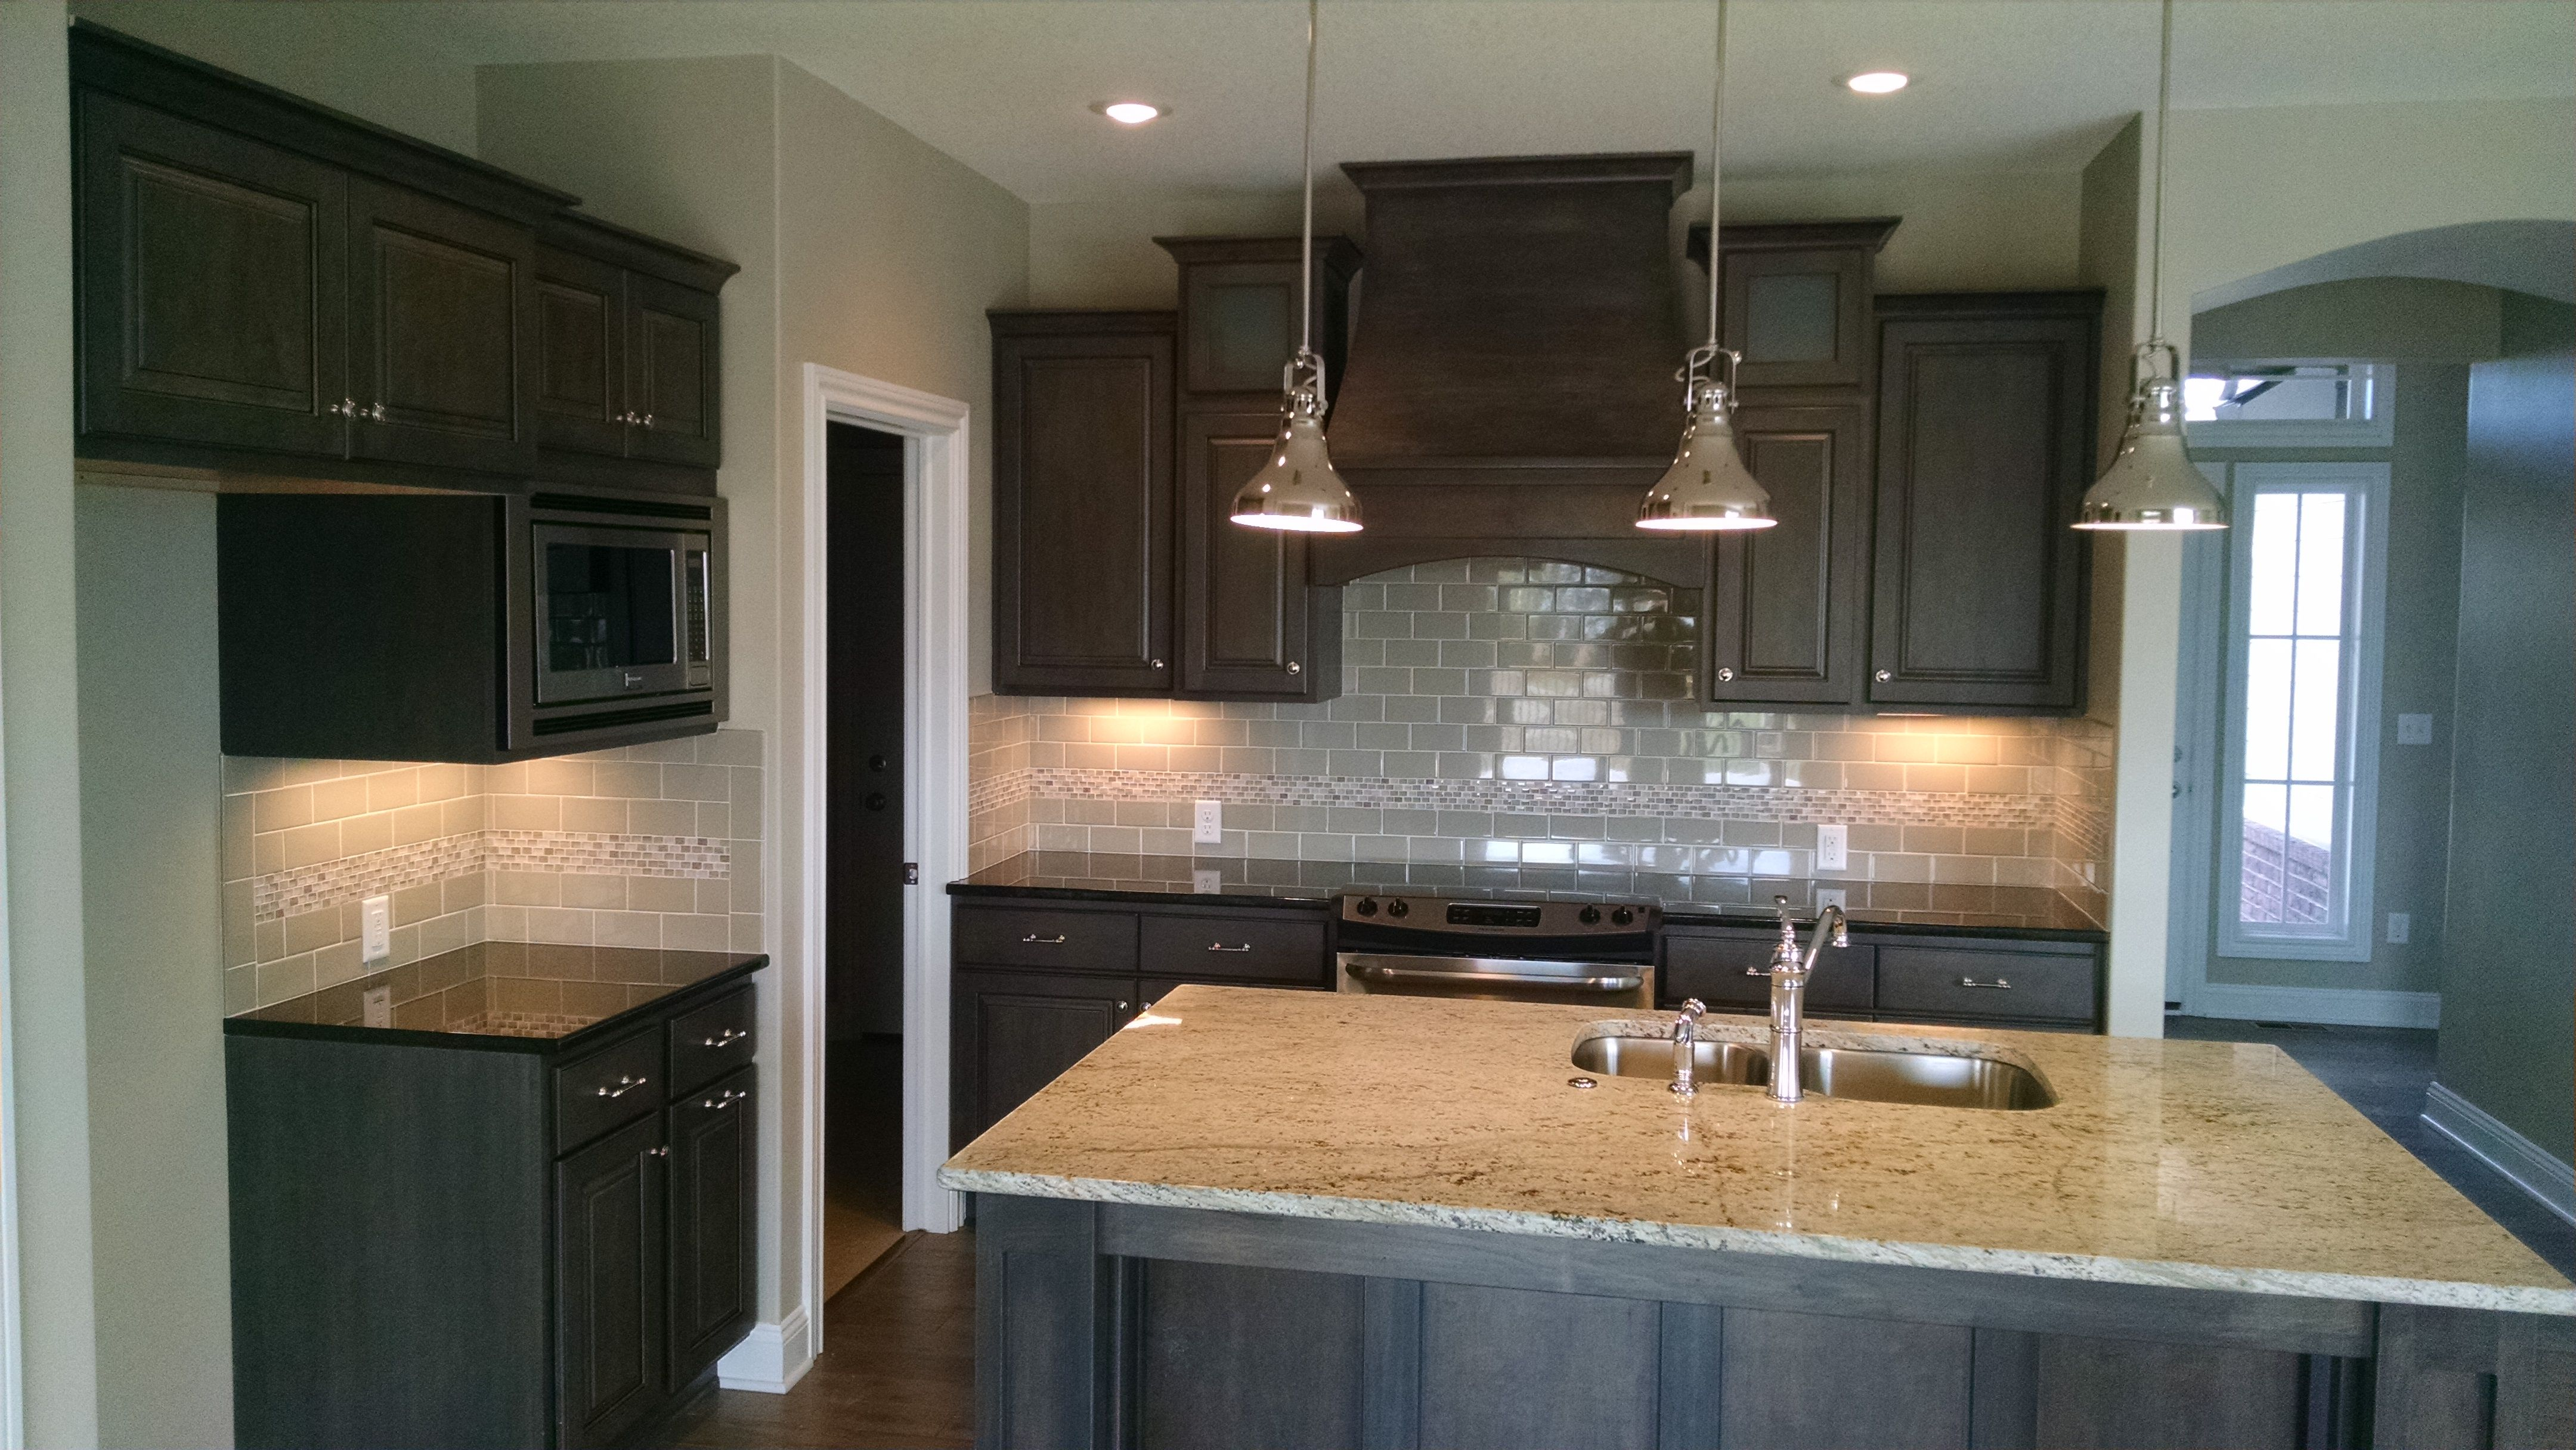 Another Great Look With Stacked Cabinets This Time With A Frosted Glass That Looks Sharp With The Dark Stain This Particular Kitch Kitchen New Kitchen Cabinet